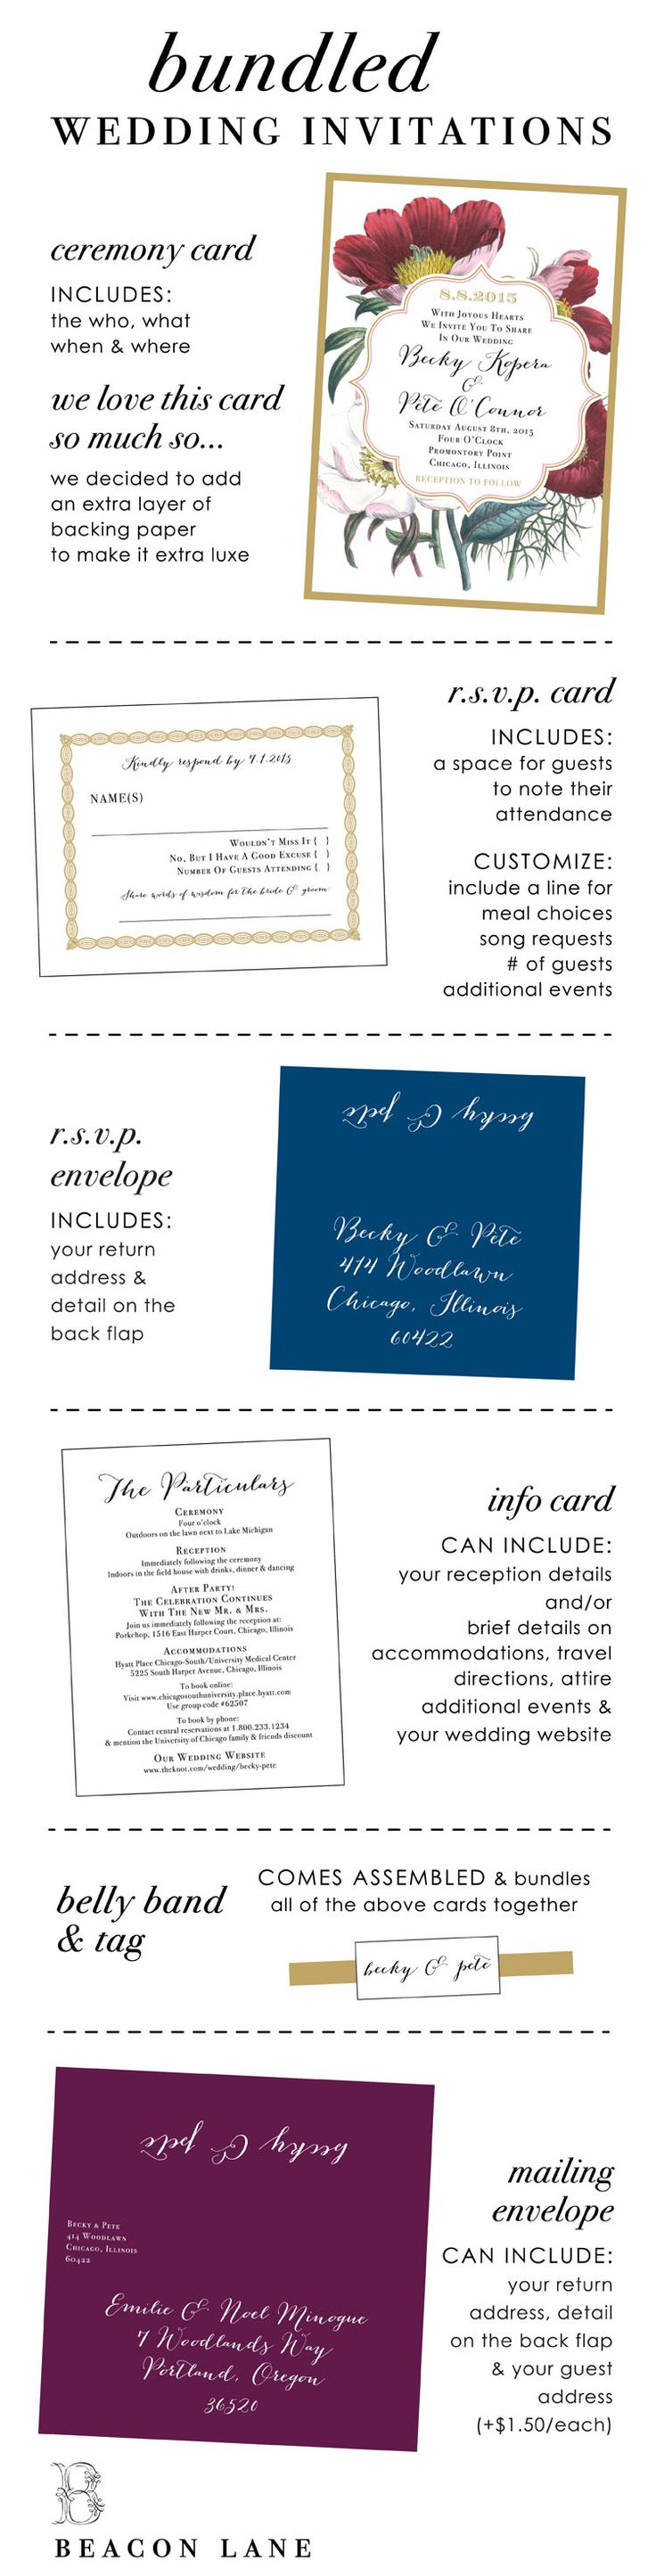 The 17 best images about Wedding invitations 2017 on Pinterest